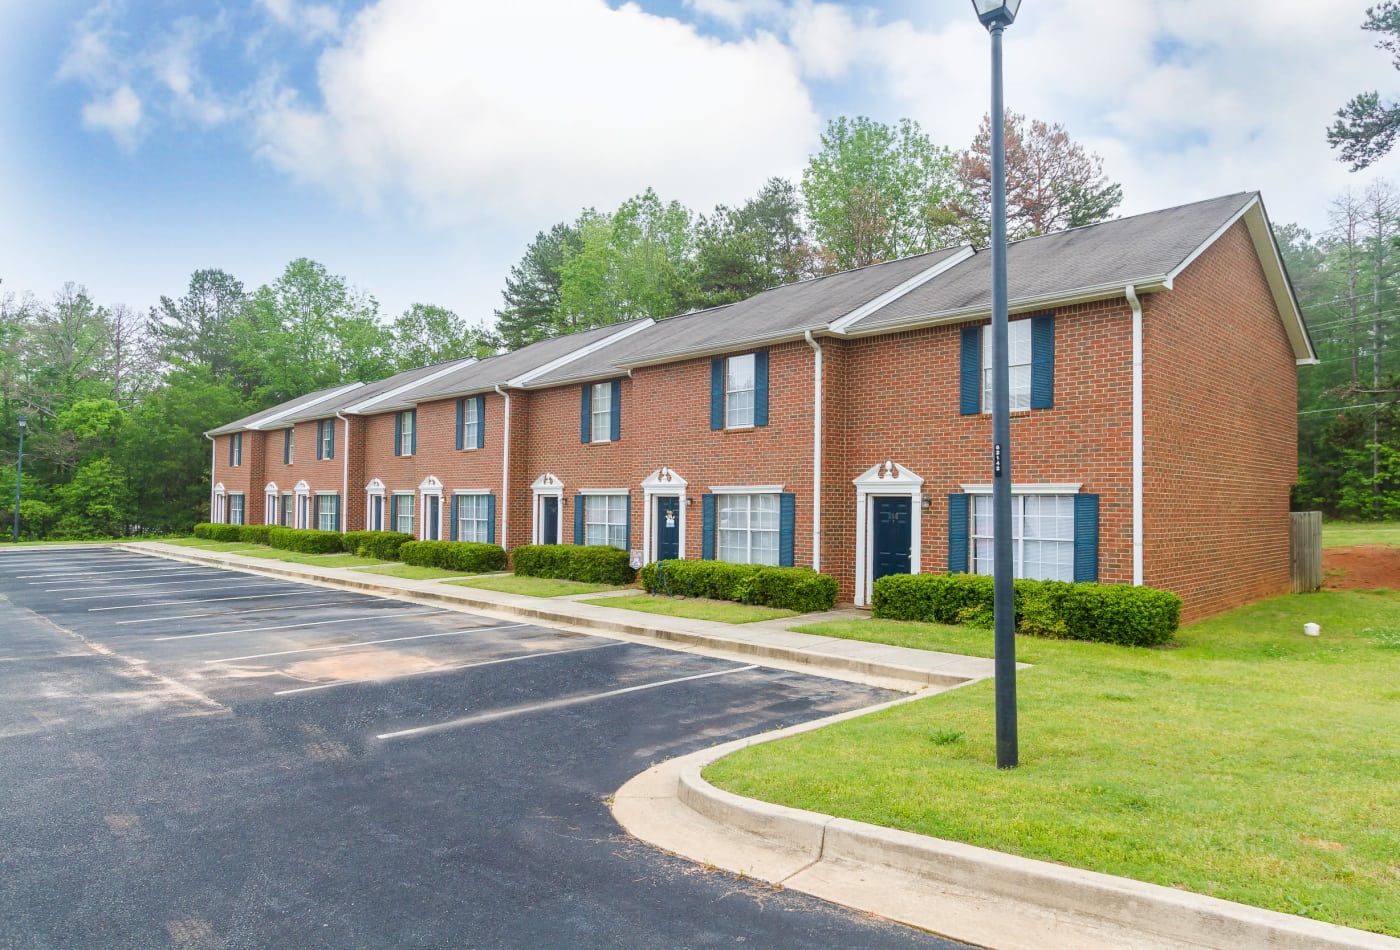 Community amenities at Mount Olive Townhomes